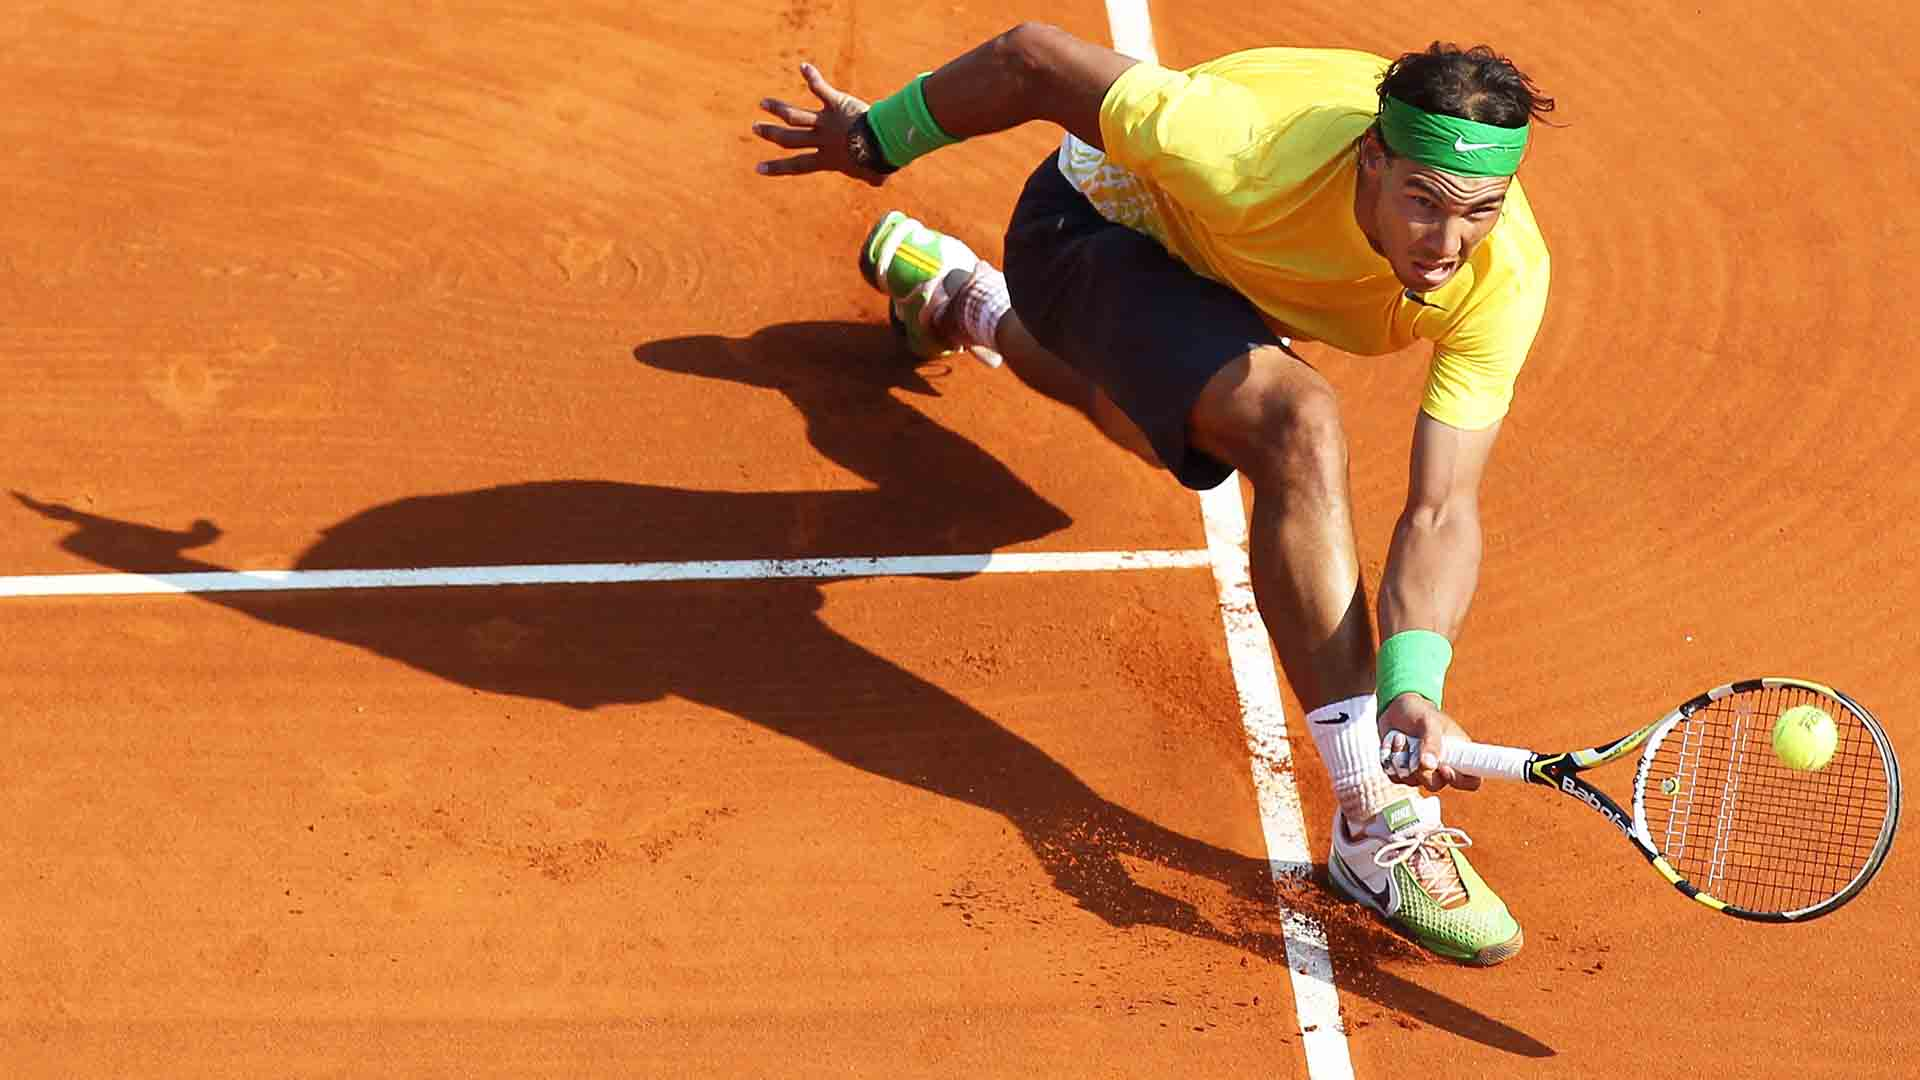 <a href='https://www.atptour.com/en/players/rafael-nadal/n409/overview'>Rafael Nadal</a> beats <a href='https://www.atptour.com/en/players/david-ferrer/f401/overview'>David Ferrer</a> to win his seventh straight <a href='https://www.atptour.com/en/tournaments/monte-carlo/410/overview'>Rolex Monte-Carlo Masters</a> title.